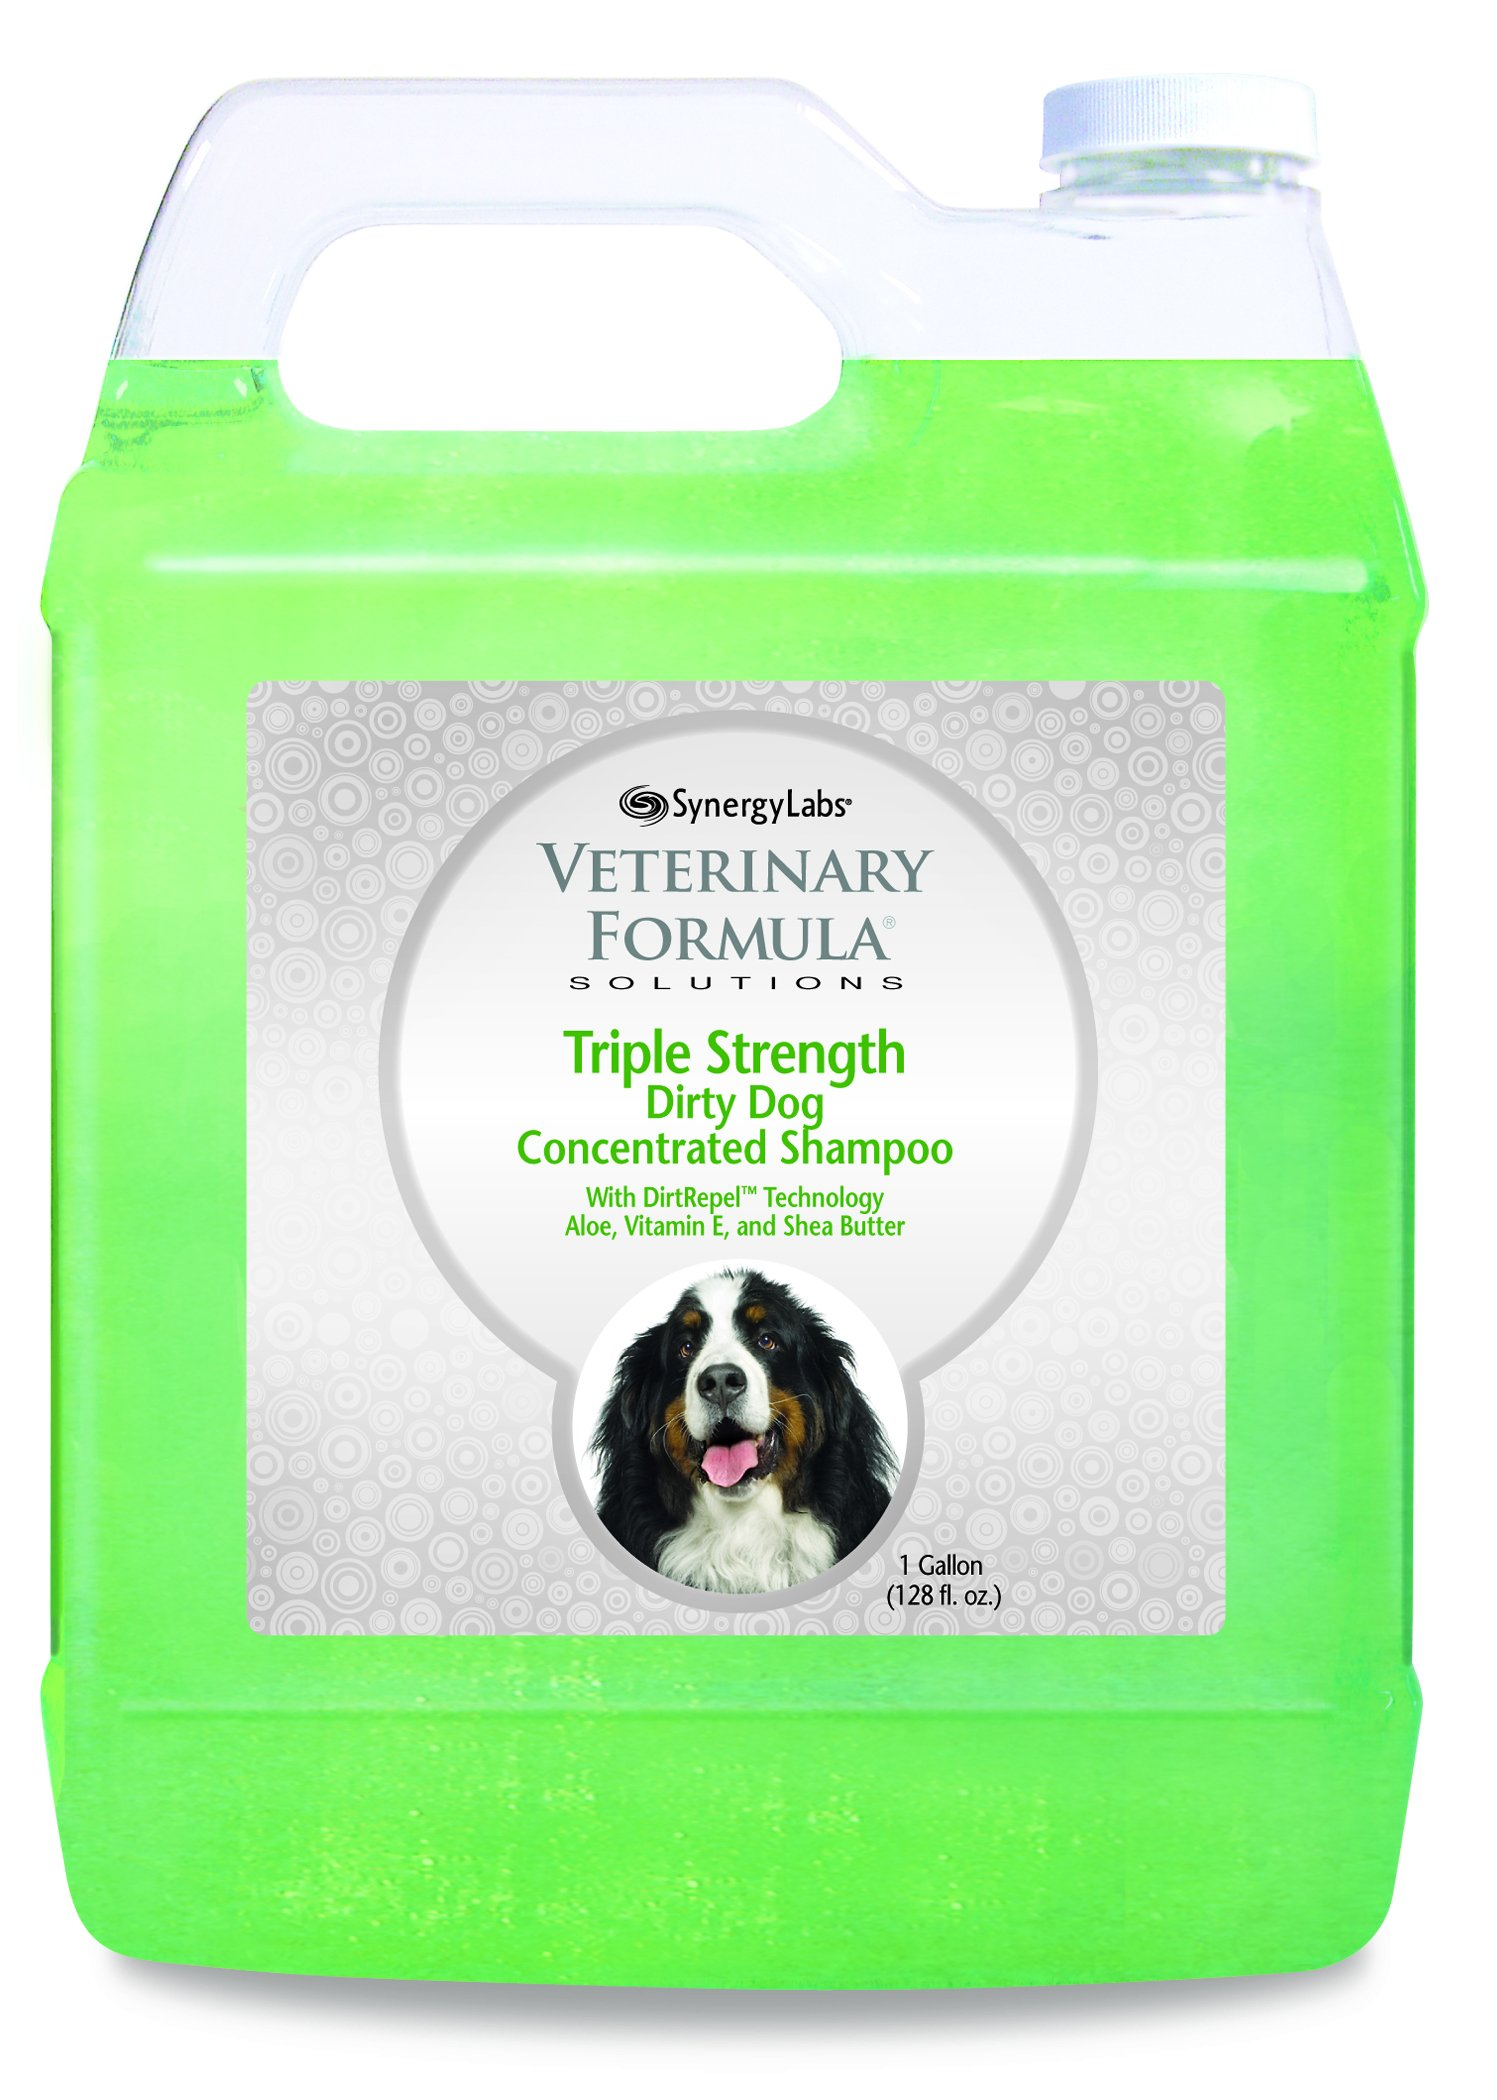 Veterinary Formula Solutions Triple Strength Dirty Dog Concentrated Shampoo, 1 Gallon (128oz) - Shea Oil, Aloe Vera, Vitamin E, & Wheat Protein Moisturizes Skin and Conditions Coat During Deep Clean